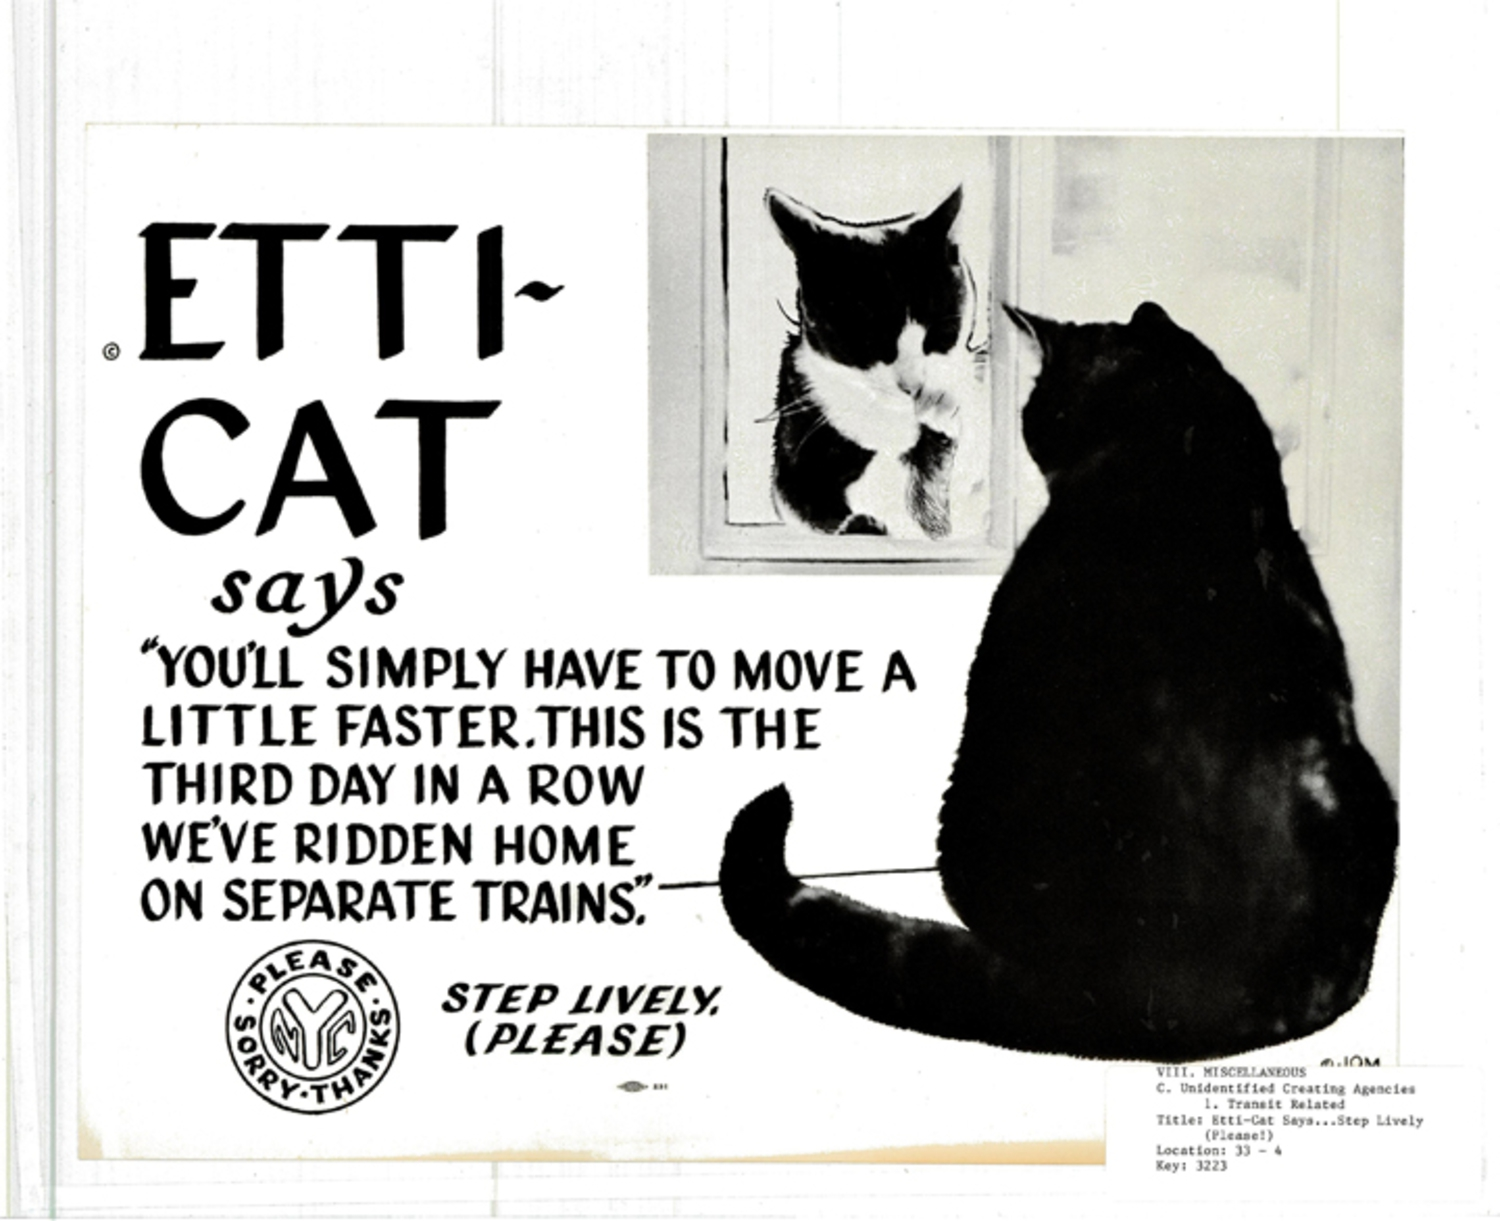 """Etti-Cat says … Step Lively. (Please)"" (1962) (courtesy Poster Collection, New York Transit Museum)"